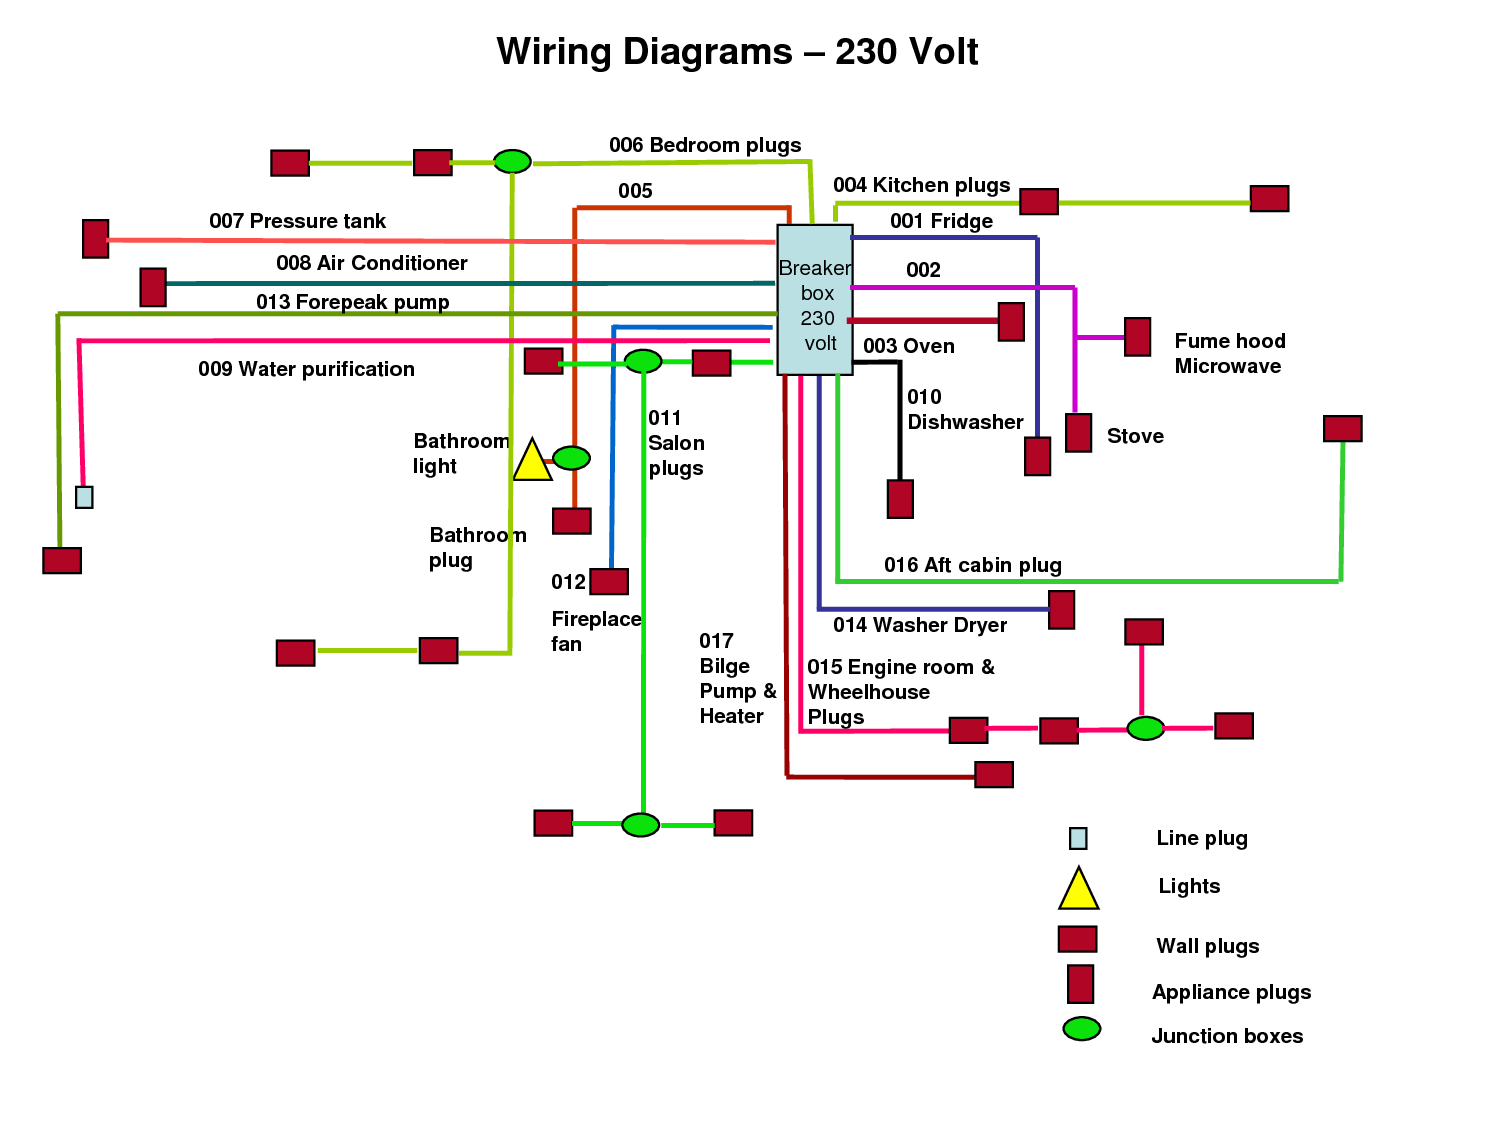 230V%2BWiring%2BDiagram electric work 230 volt plug wiring diagram at edmiracle.co